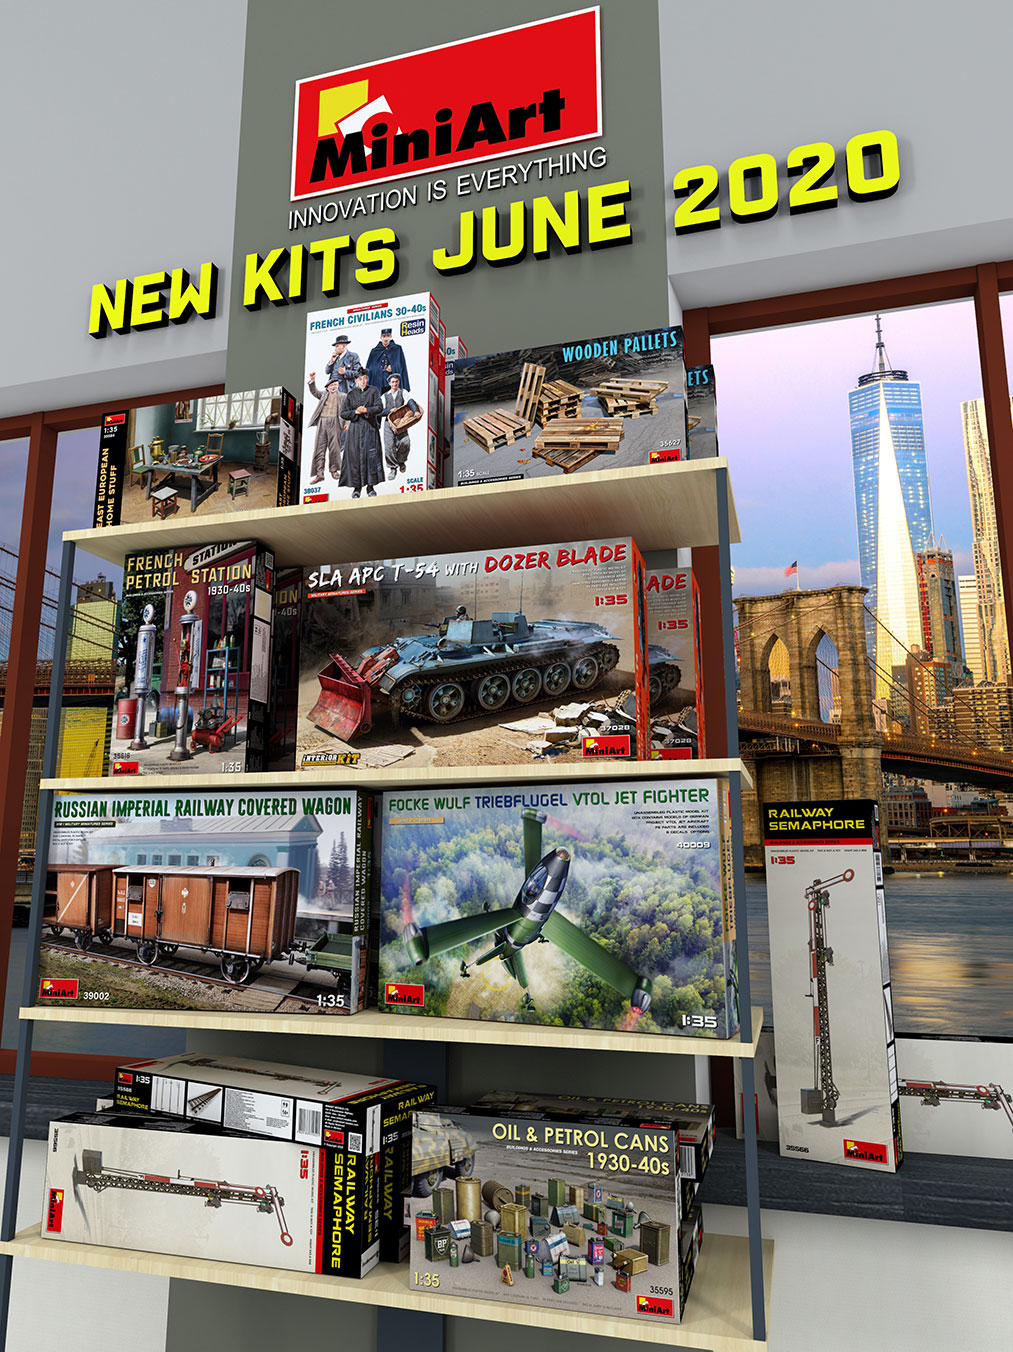 New MiniArt Kits Available June 2020